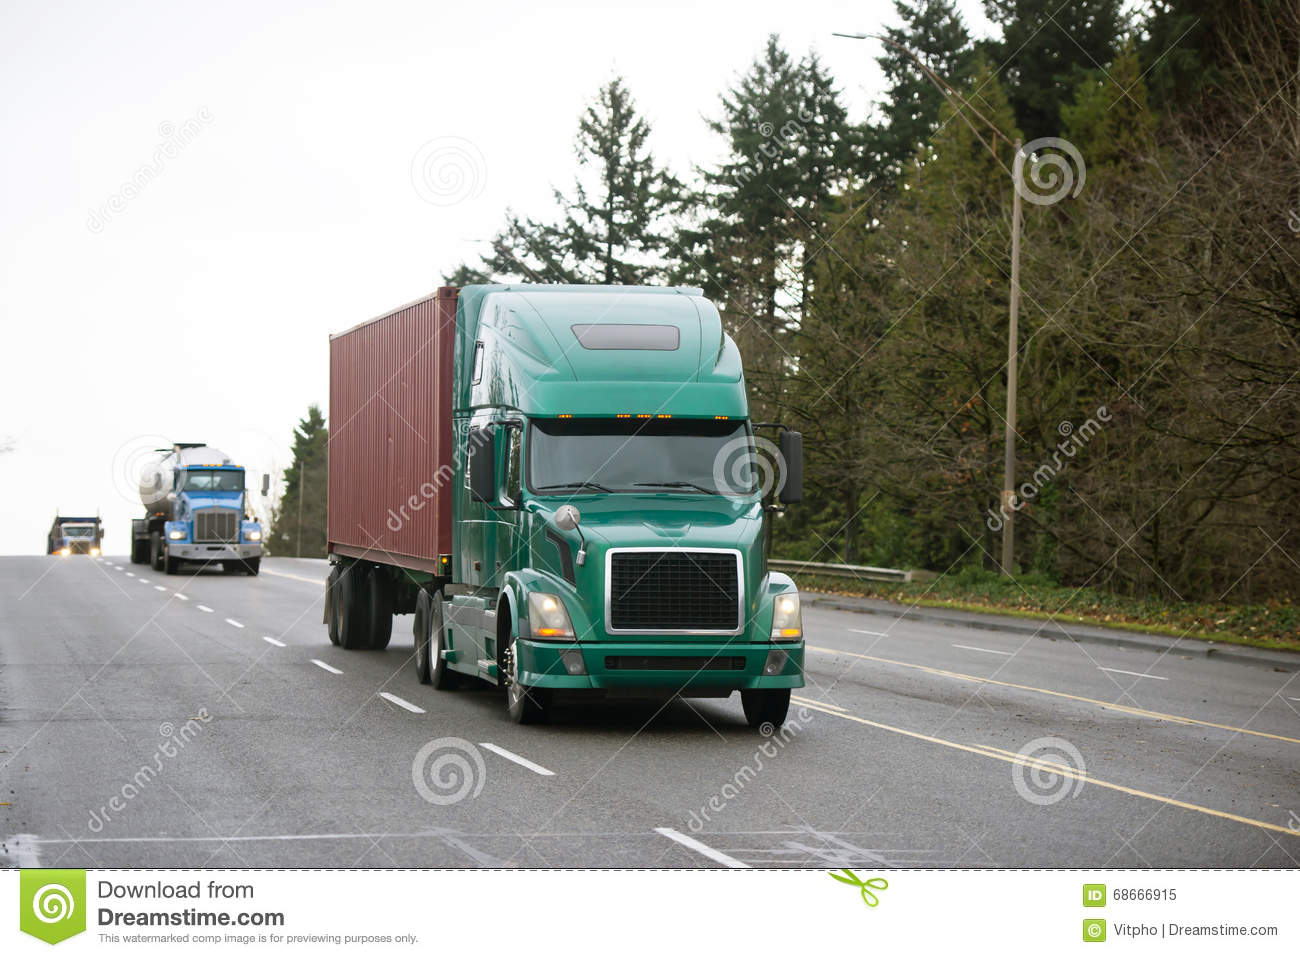 Different models of Semi trucks convoy on wide multiline road